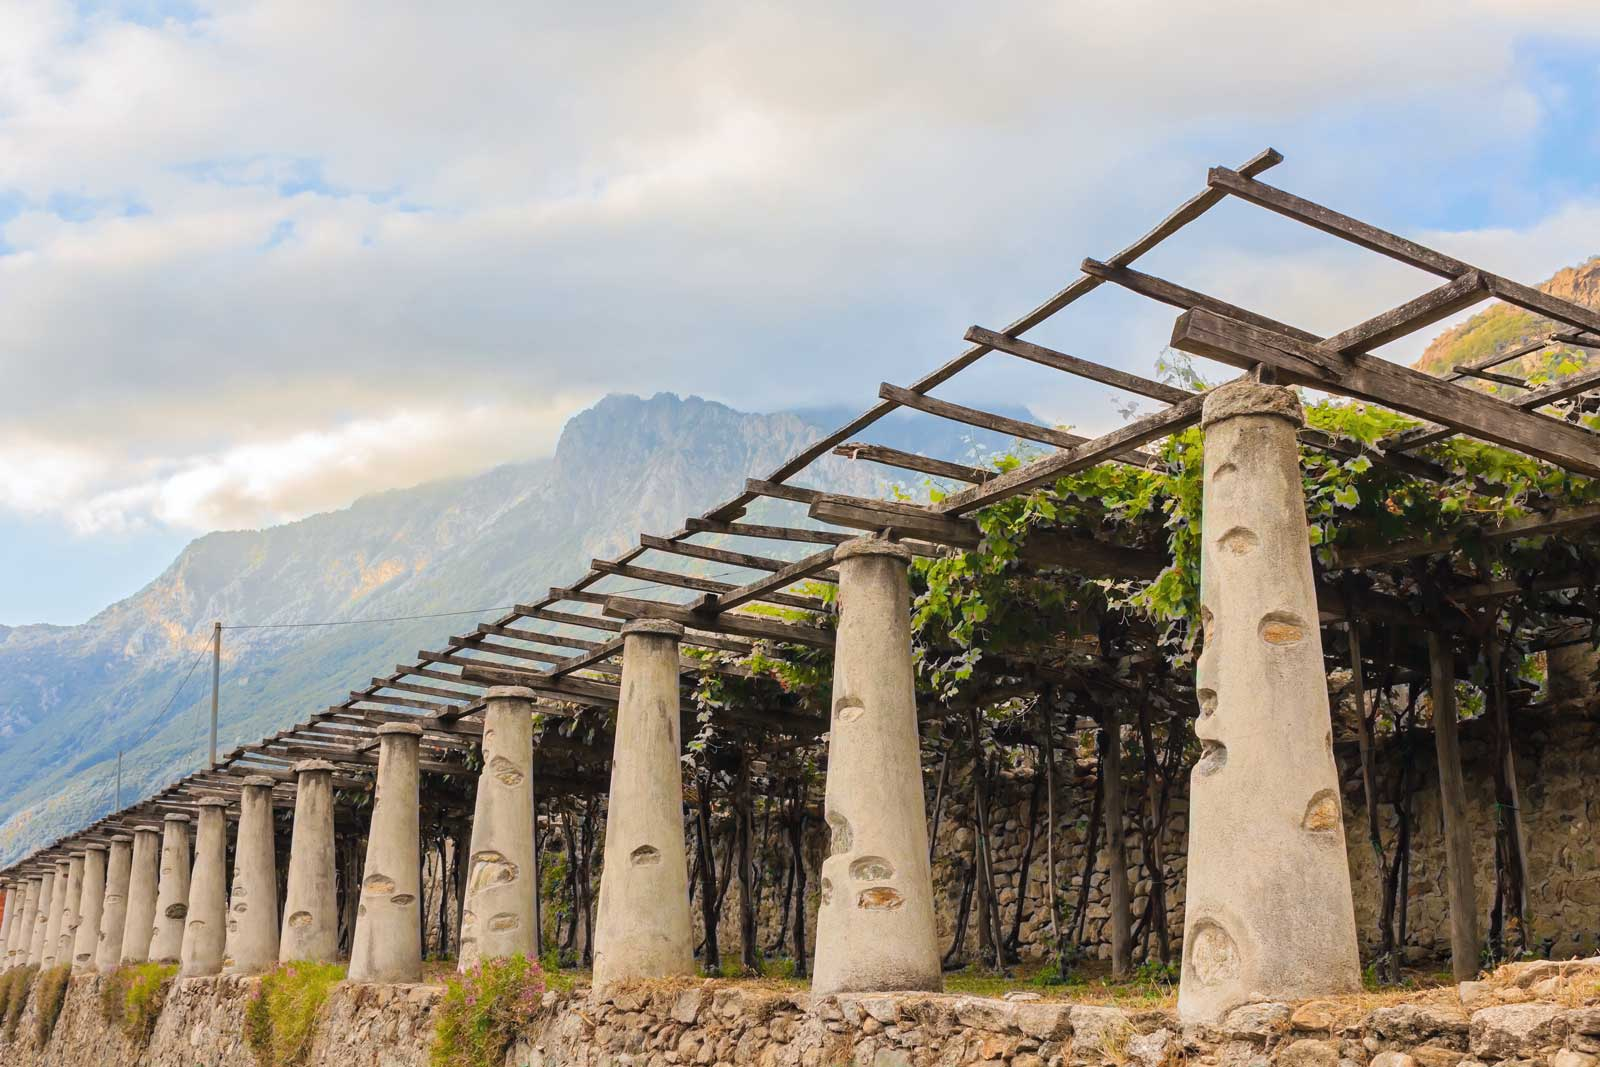 The stone columns that hold up the pergola vines of Carema's terraced vineyards. Stock photo.